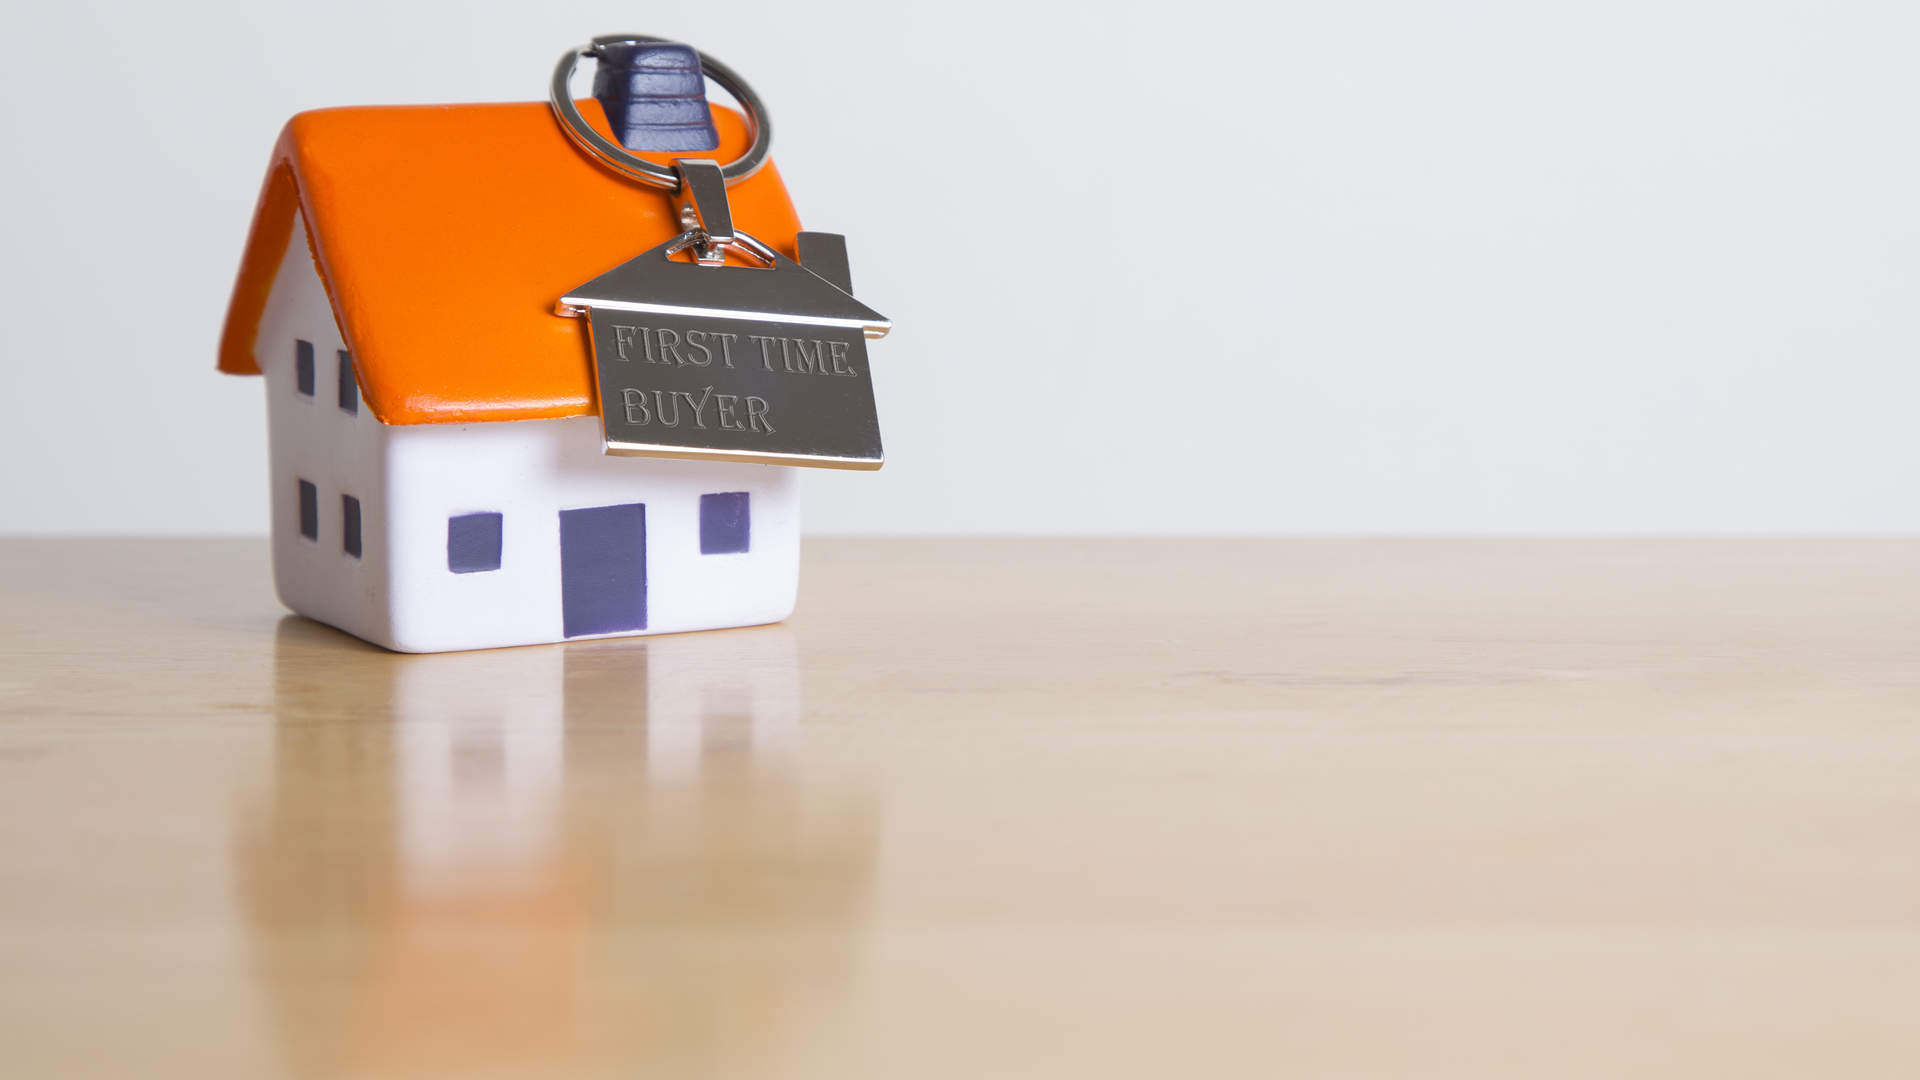 Small house with a keychain that says first time buyer